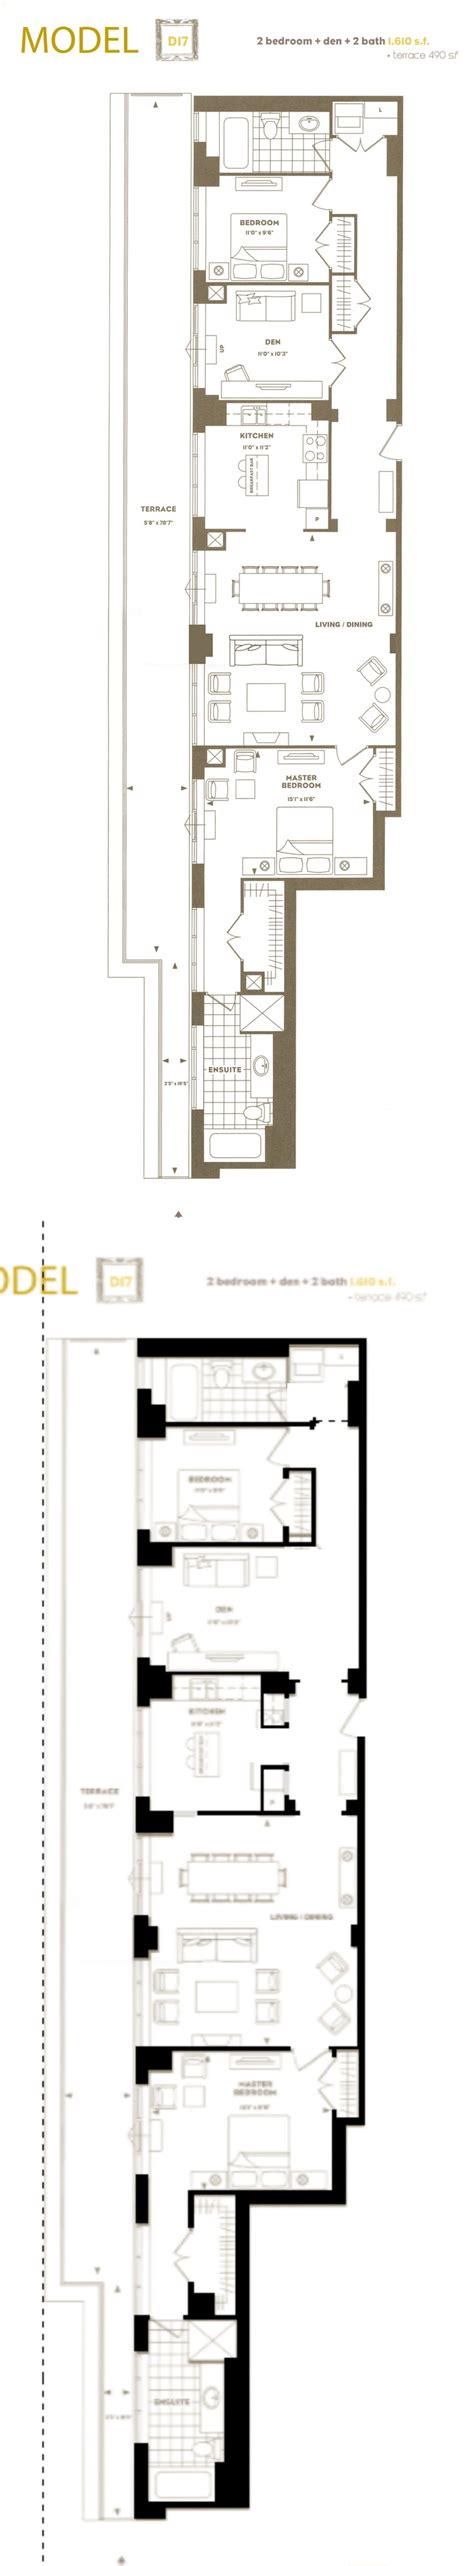 narrow apartment floor plans 25 best ideas about condo floor plans on pinterest sims